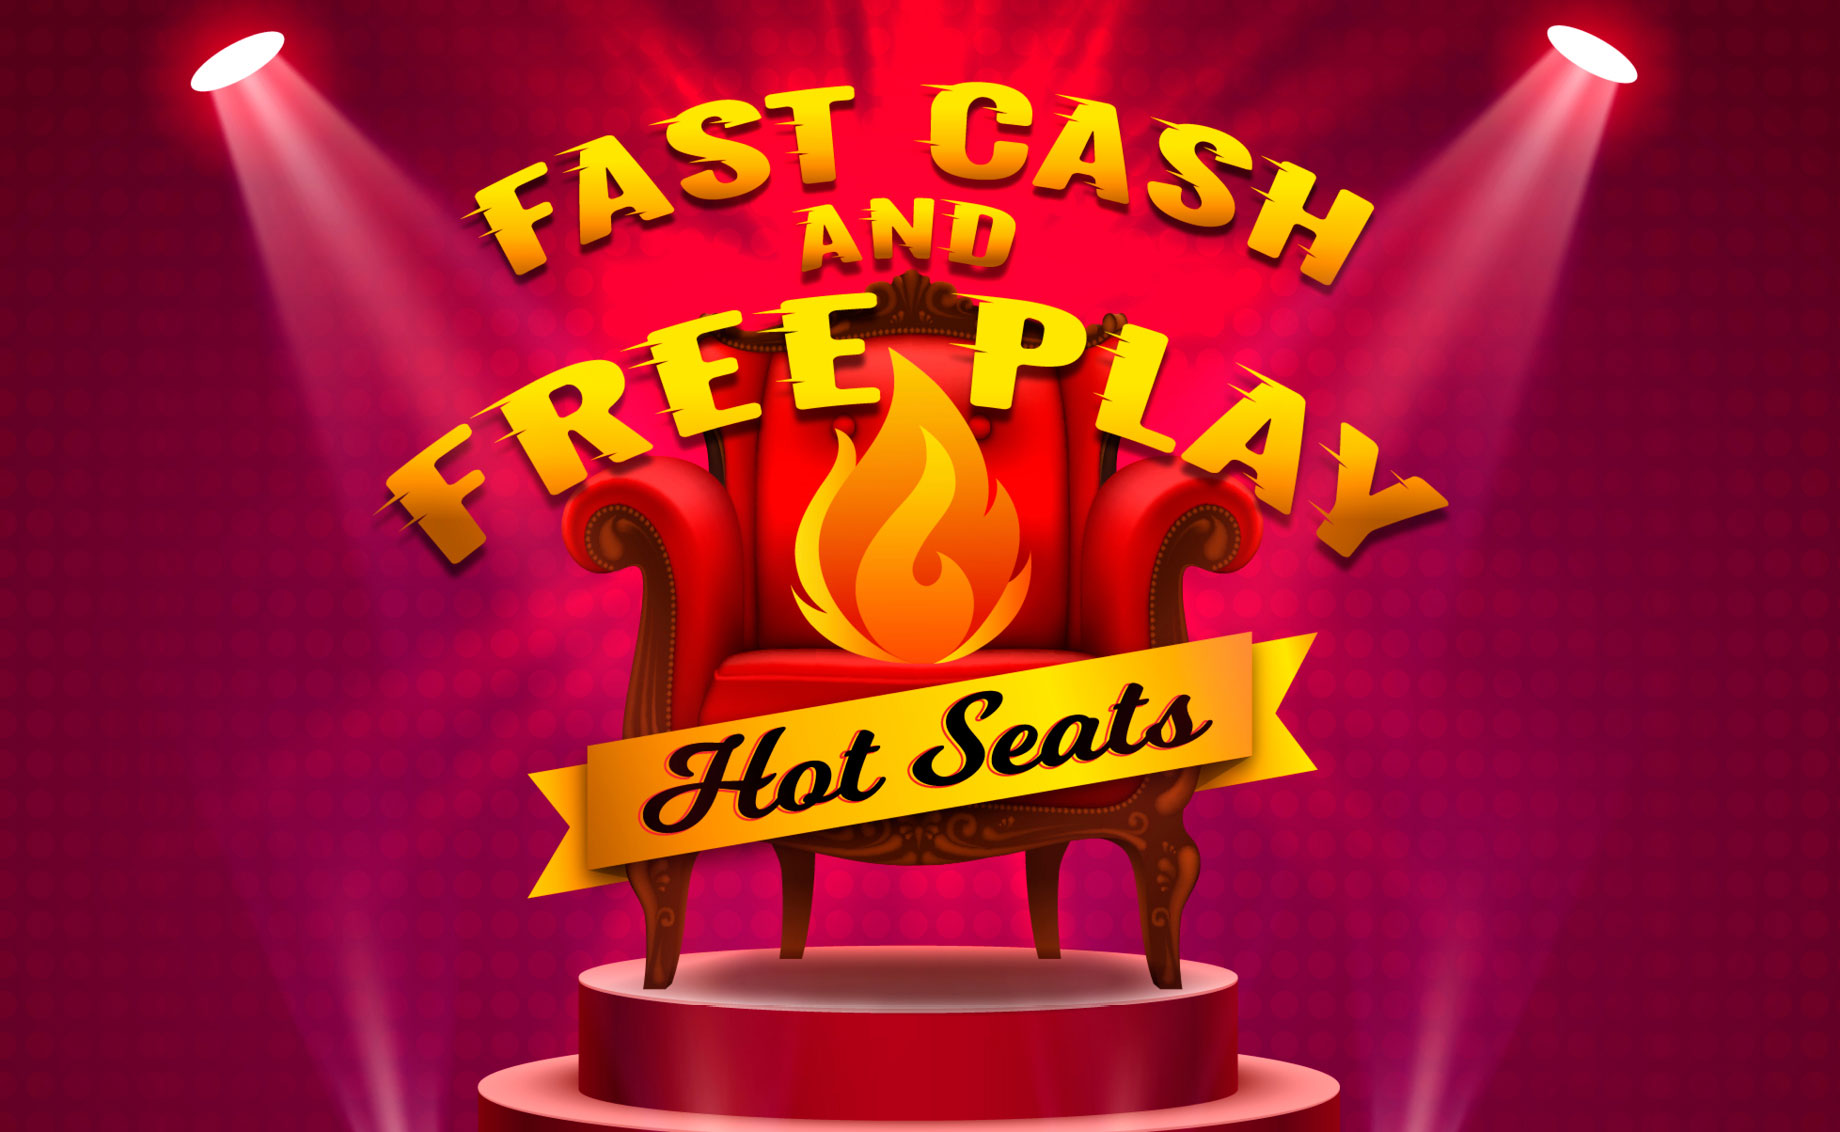 Fast Cash & Free Play Hot Seats